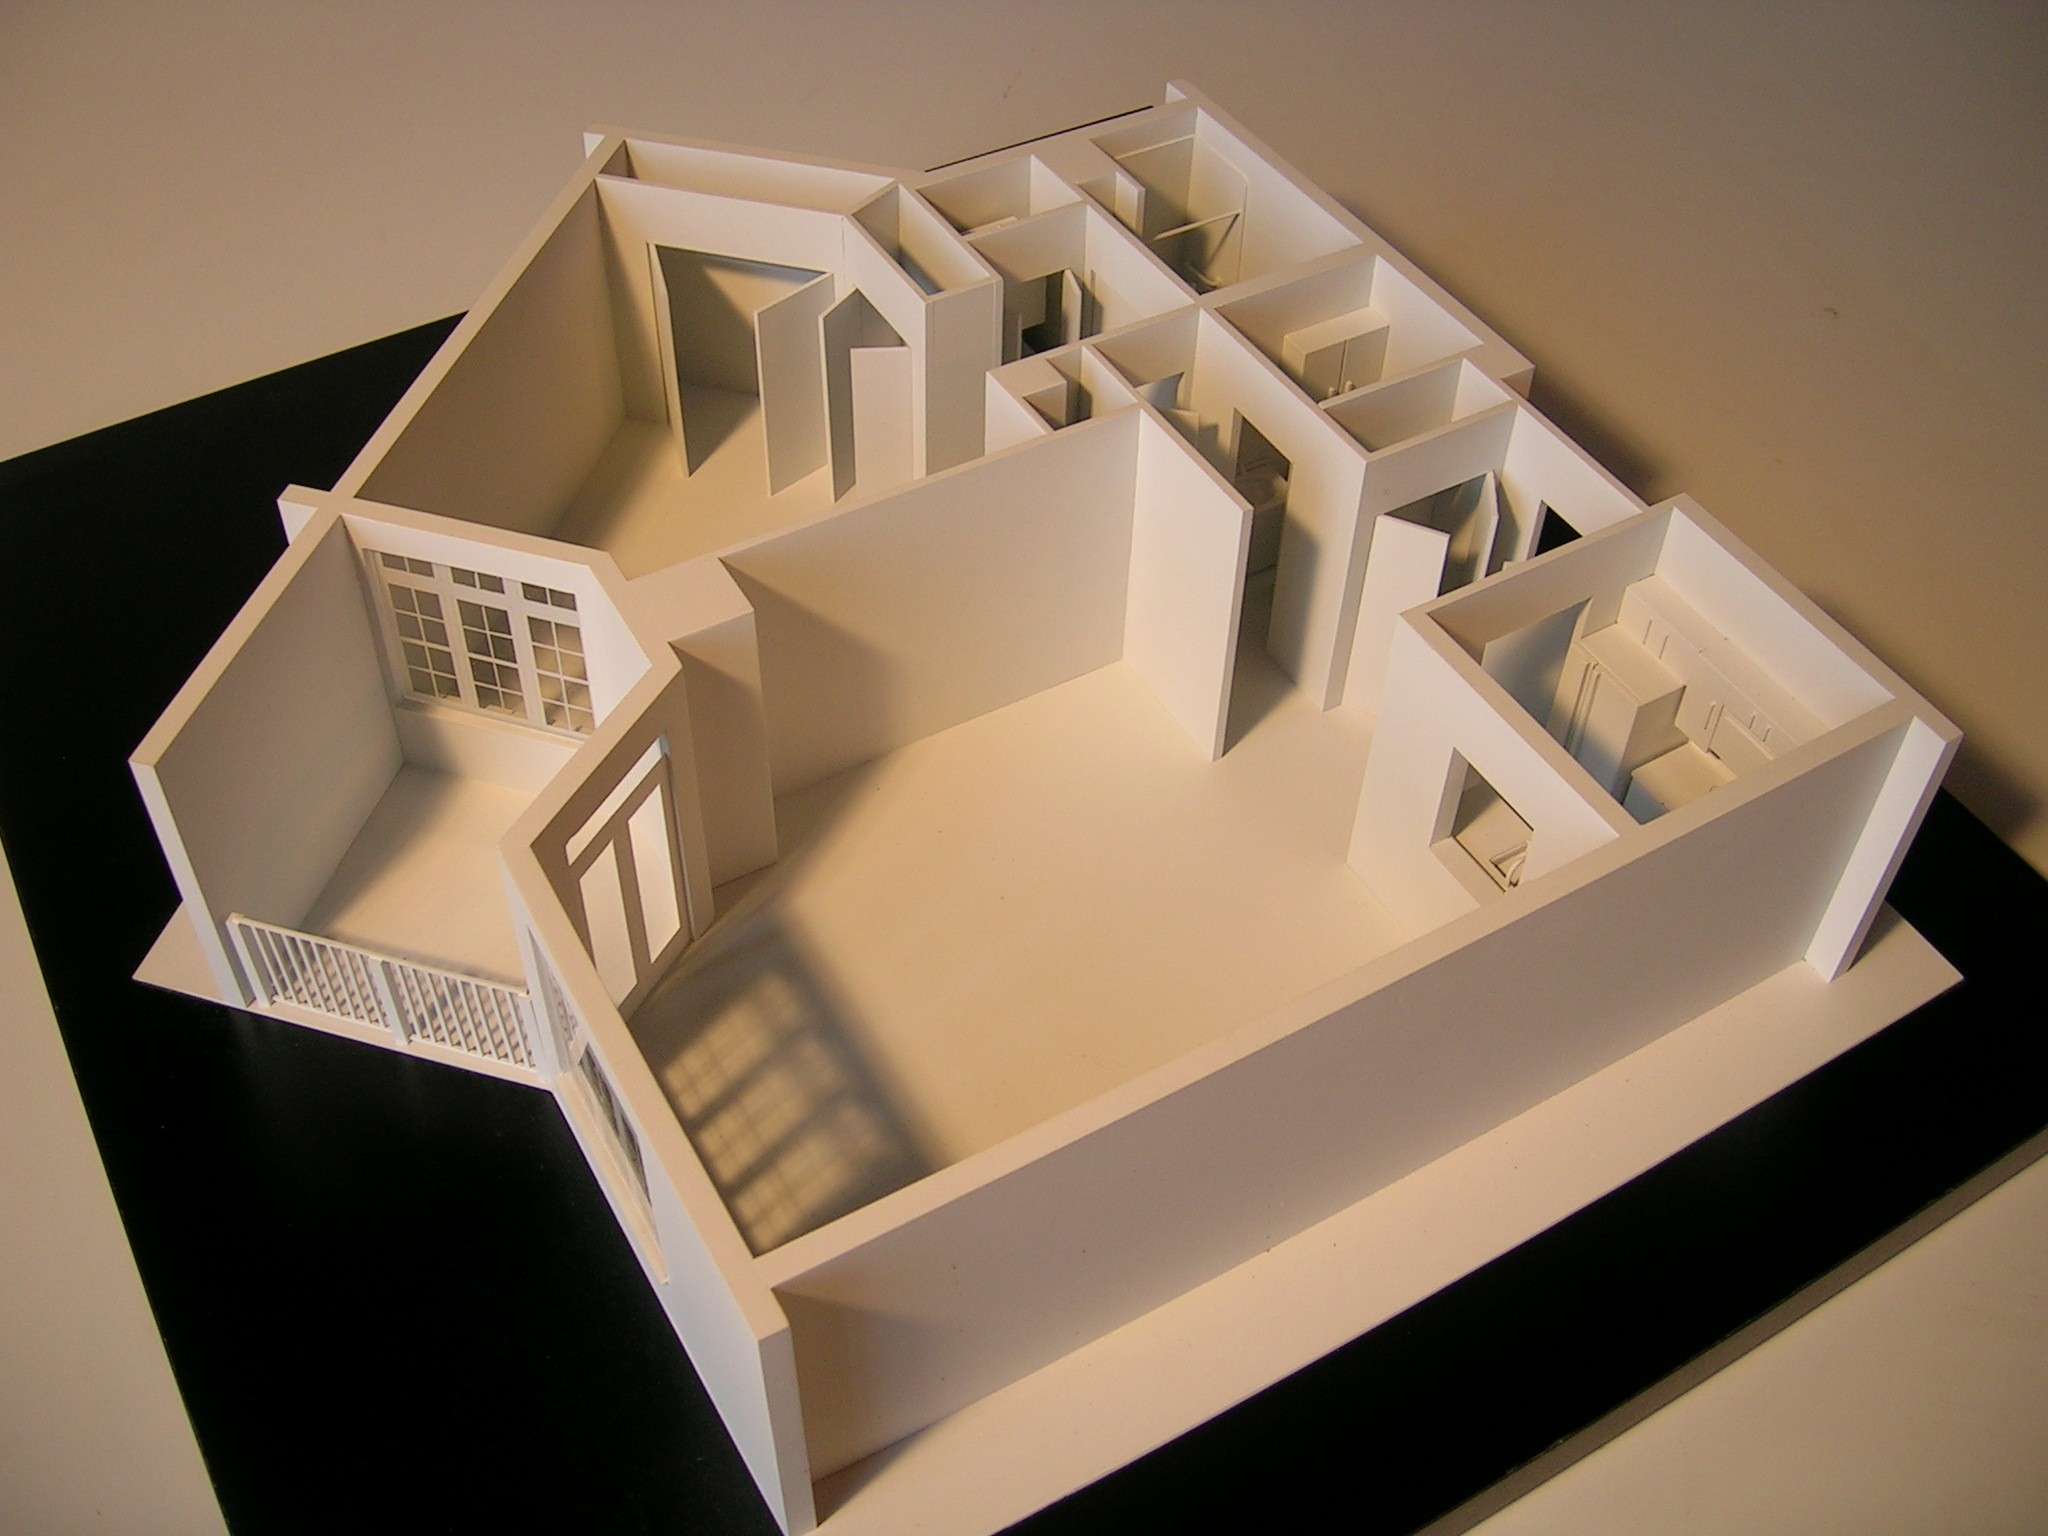 Architectural Models Communicate